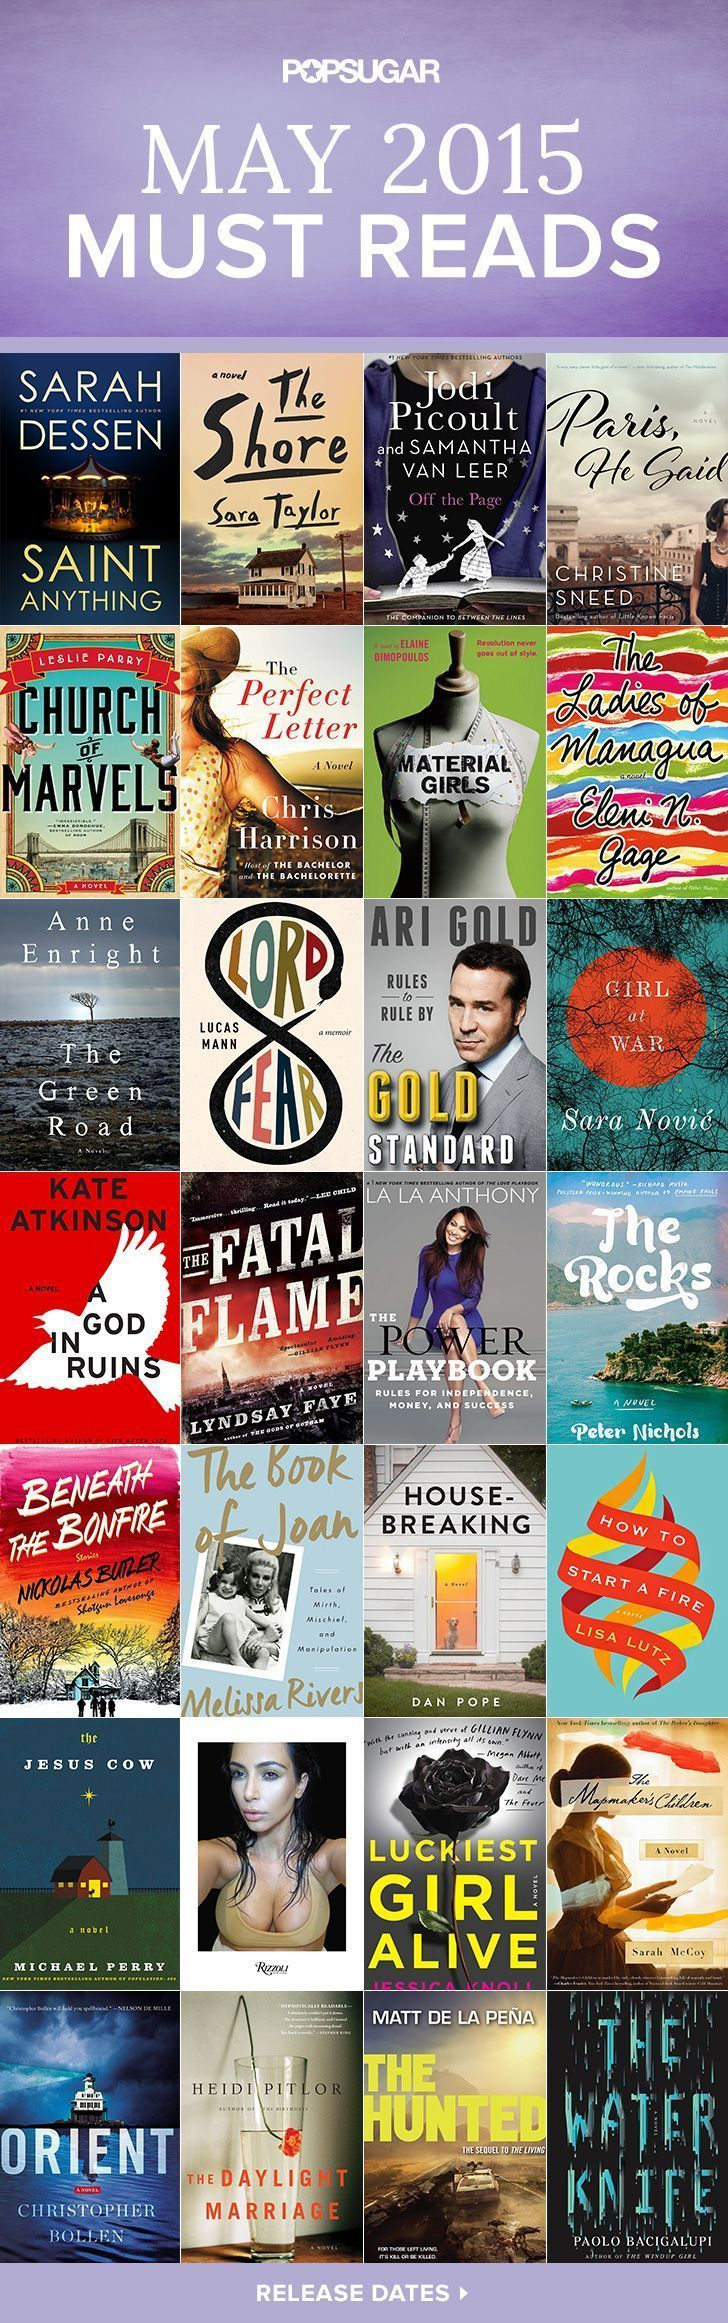 Need a new book for your reading list? Check out some of the best books from May, including must-read novels and celebrity memoirs!